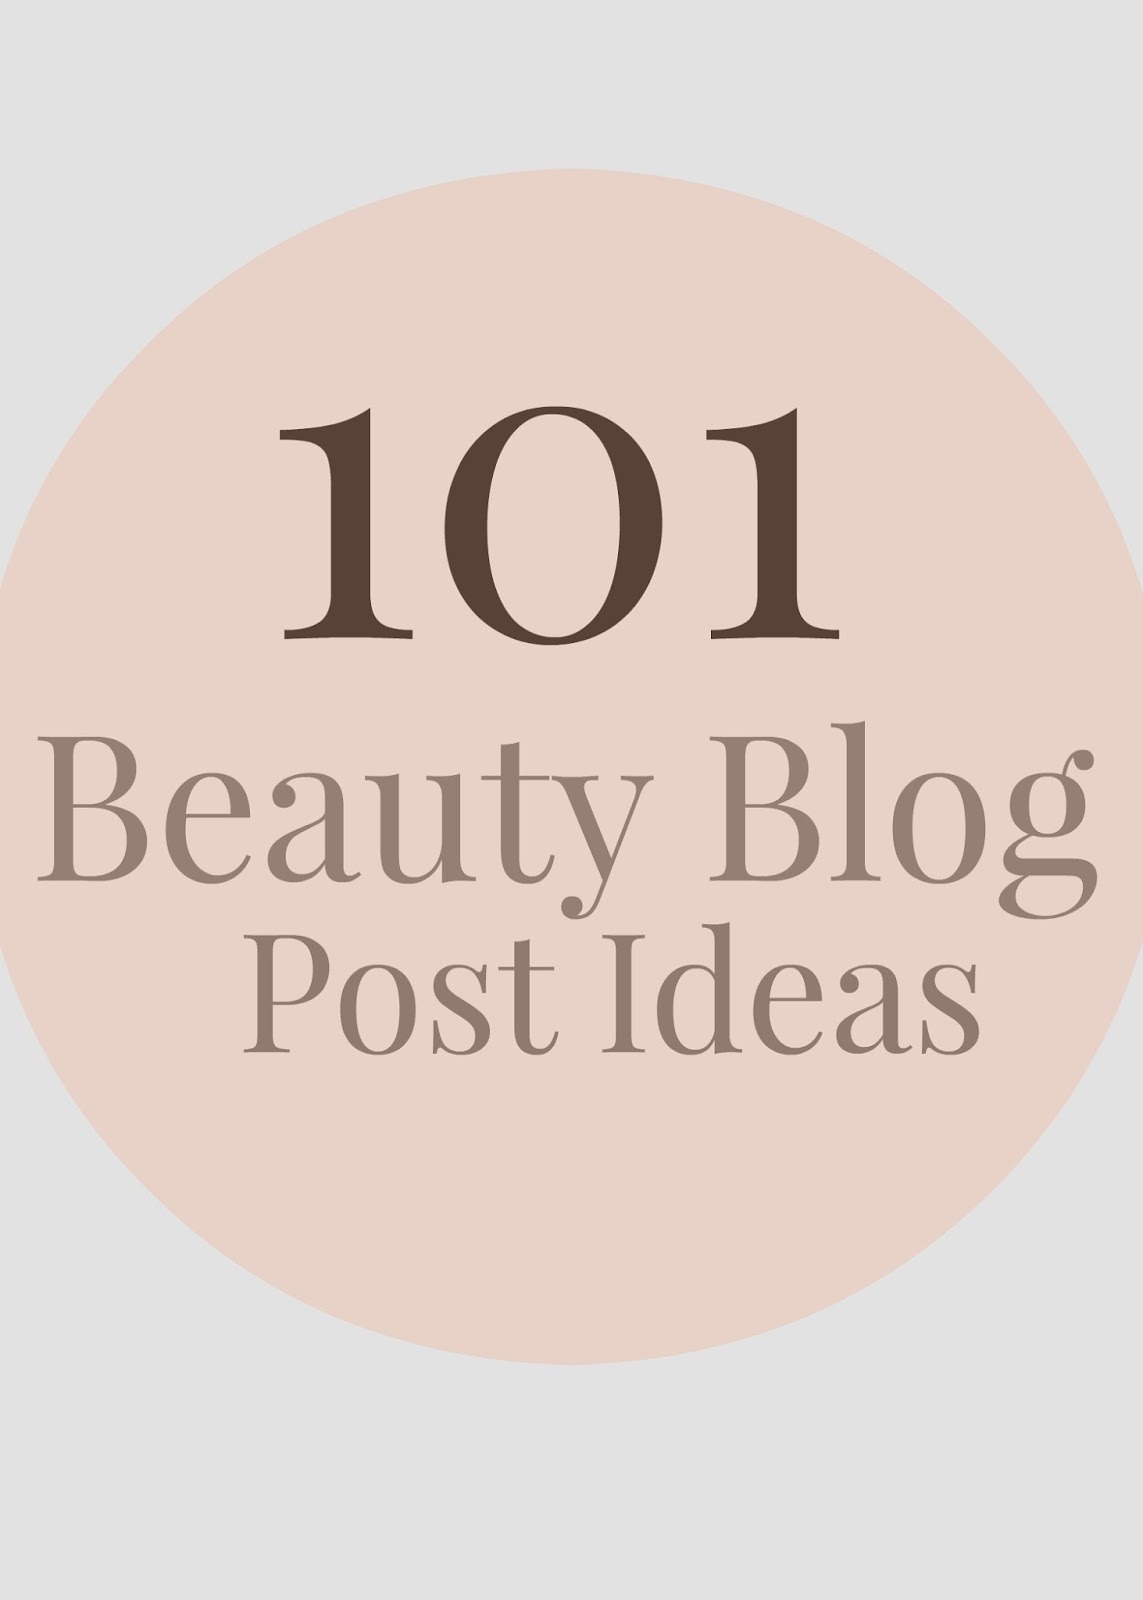 101 beauty blog post ideas tips